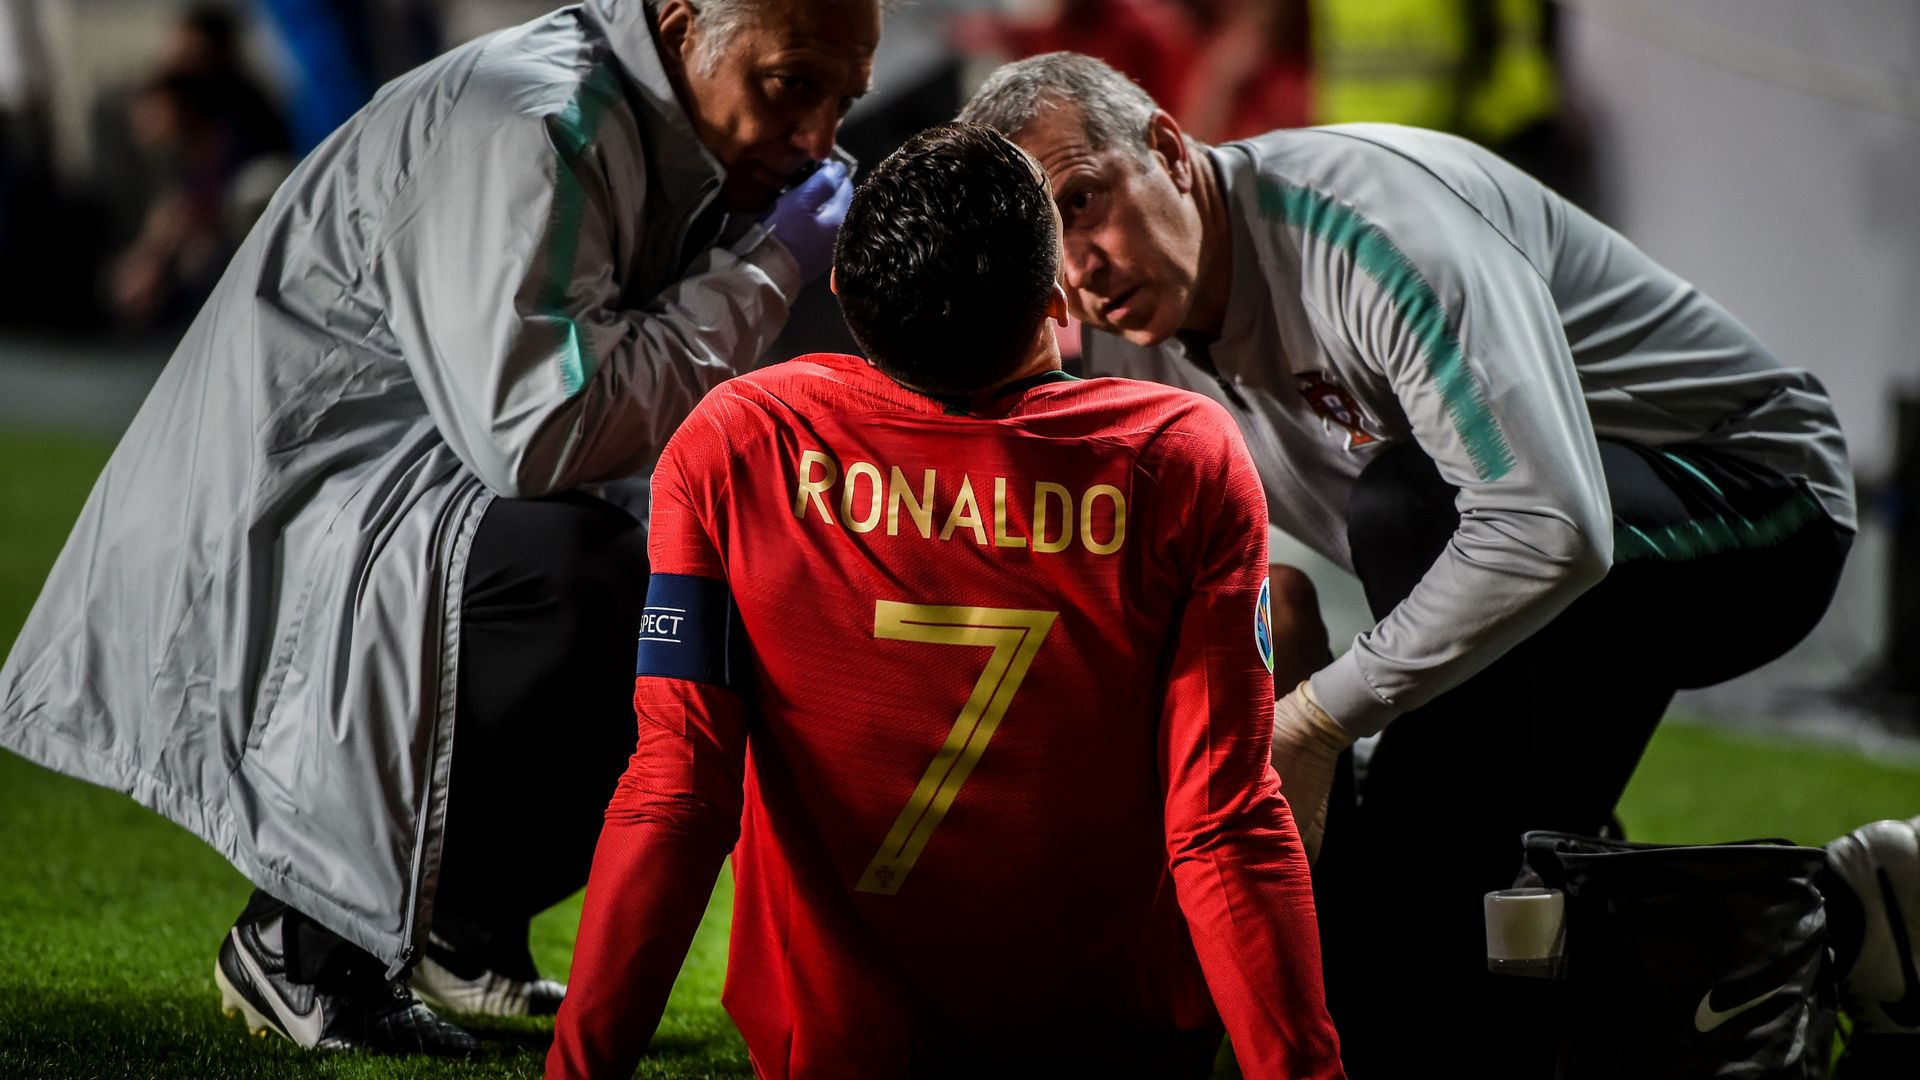 Cristiano Ronaldo forced off with injury during Euro 2020 qualifier